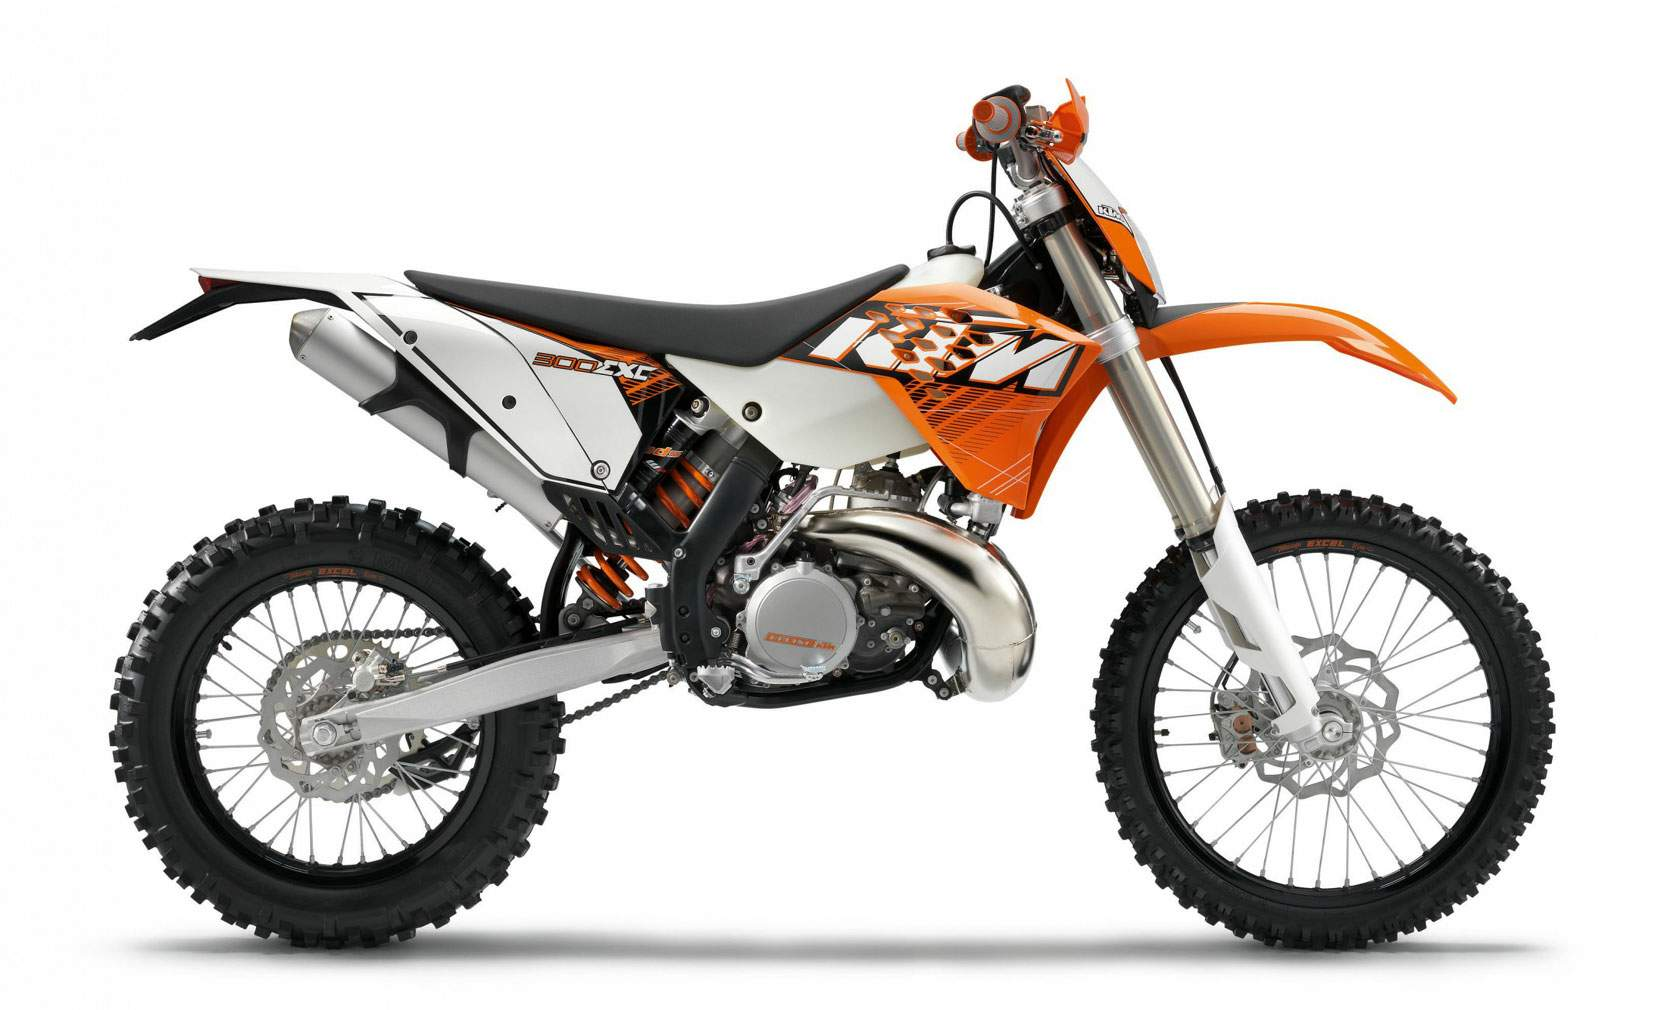 KTM 300 MXC 2002 images #85469